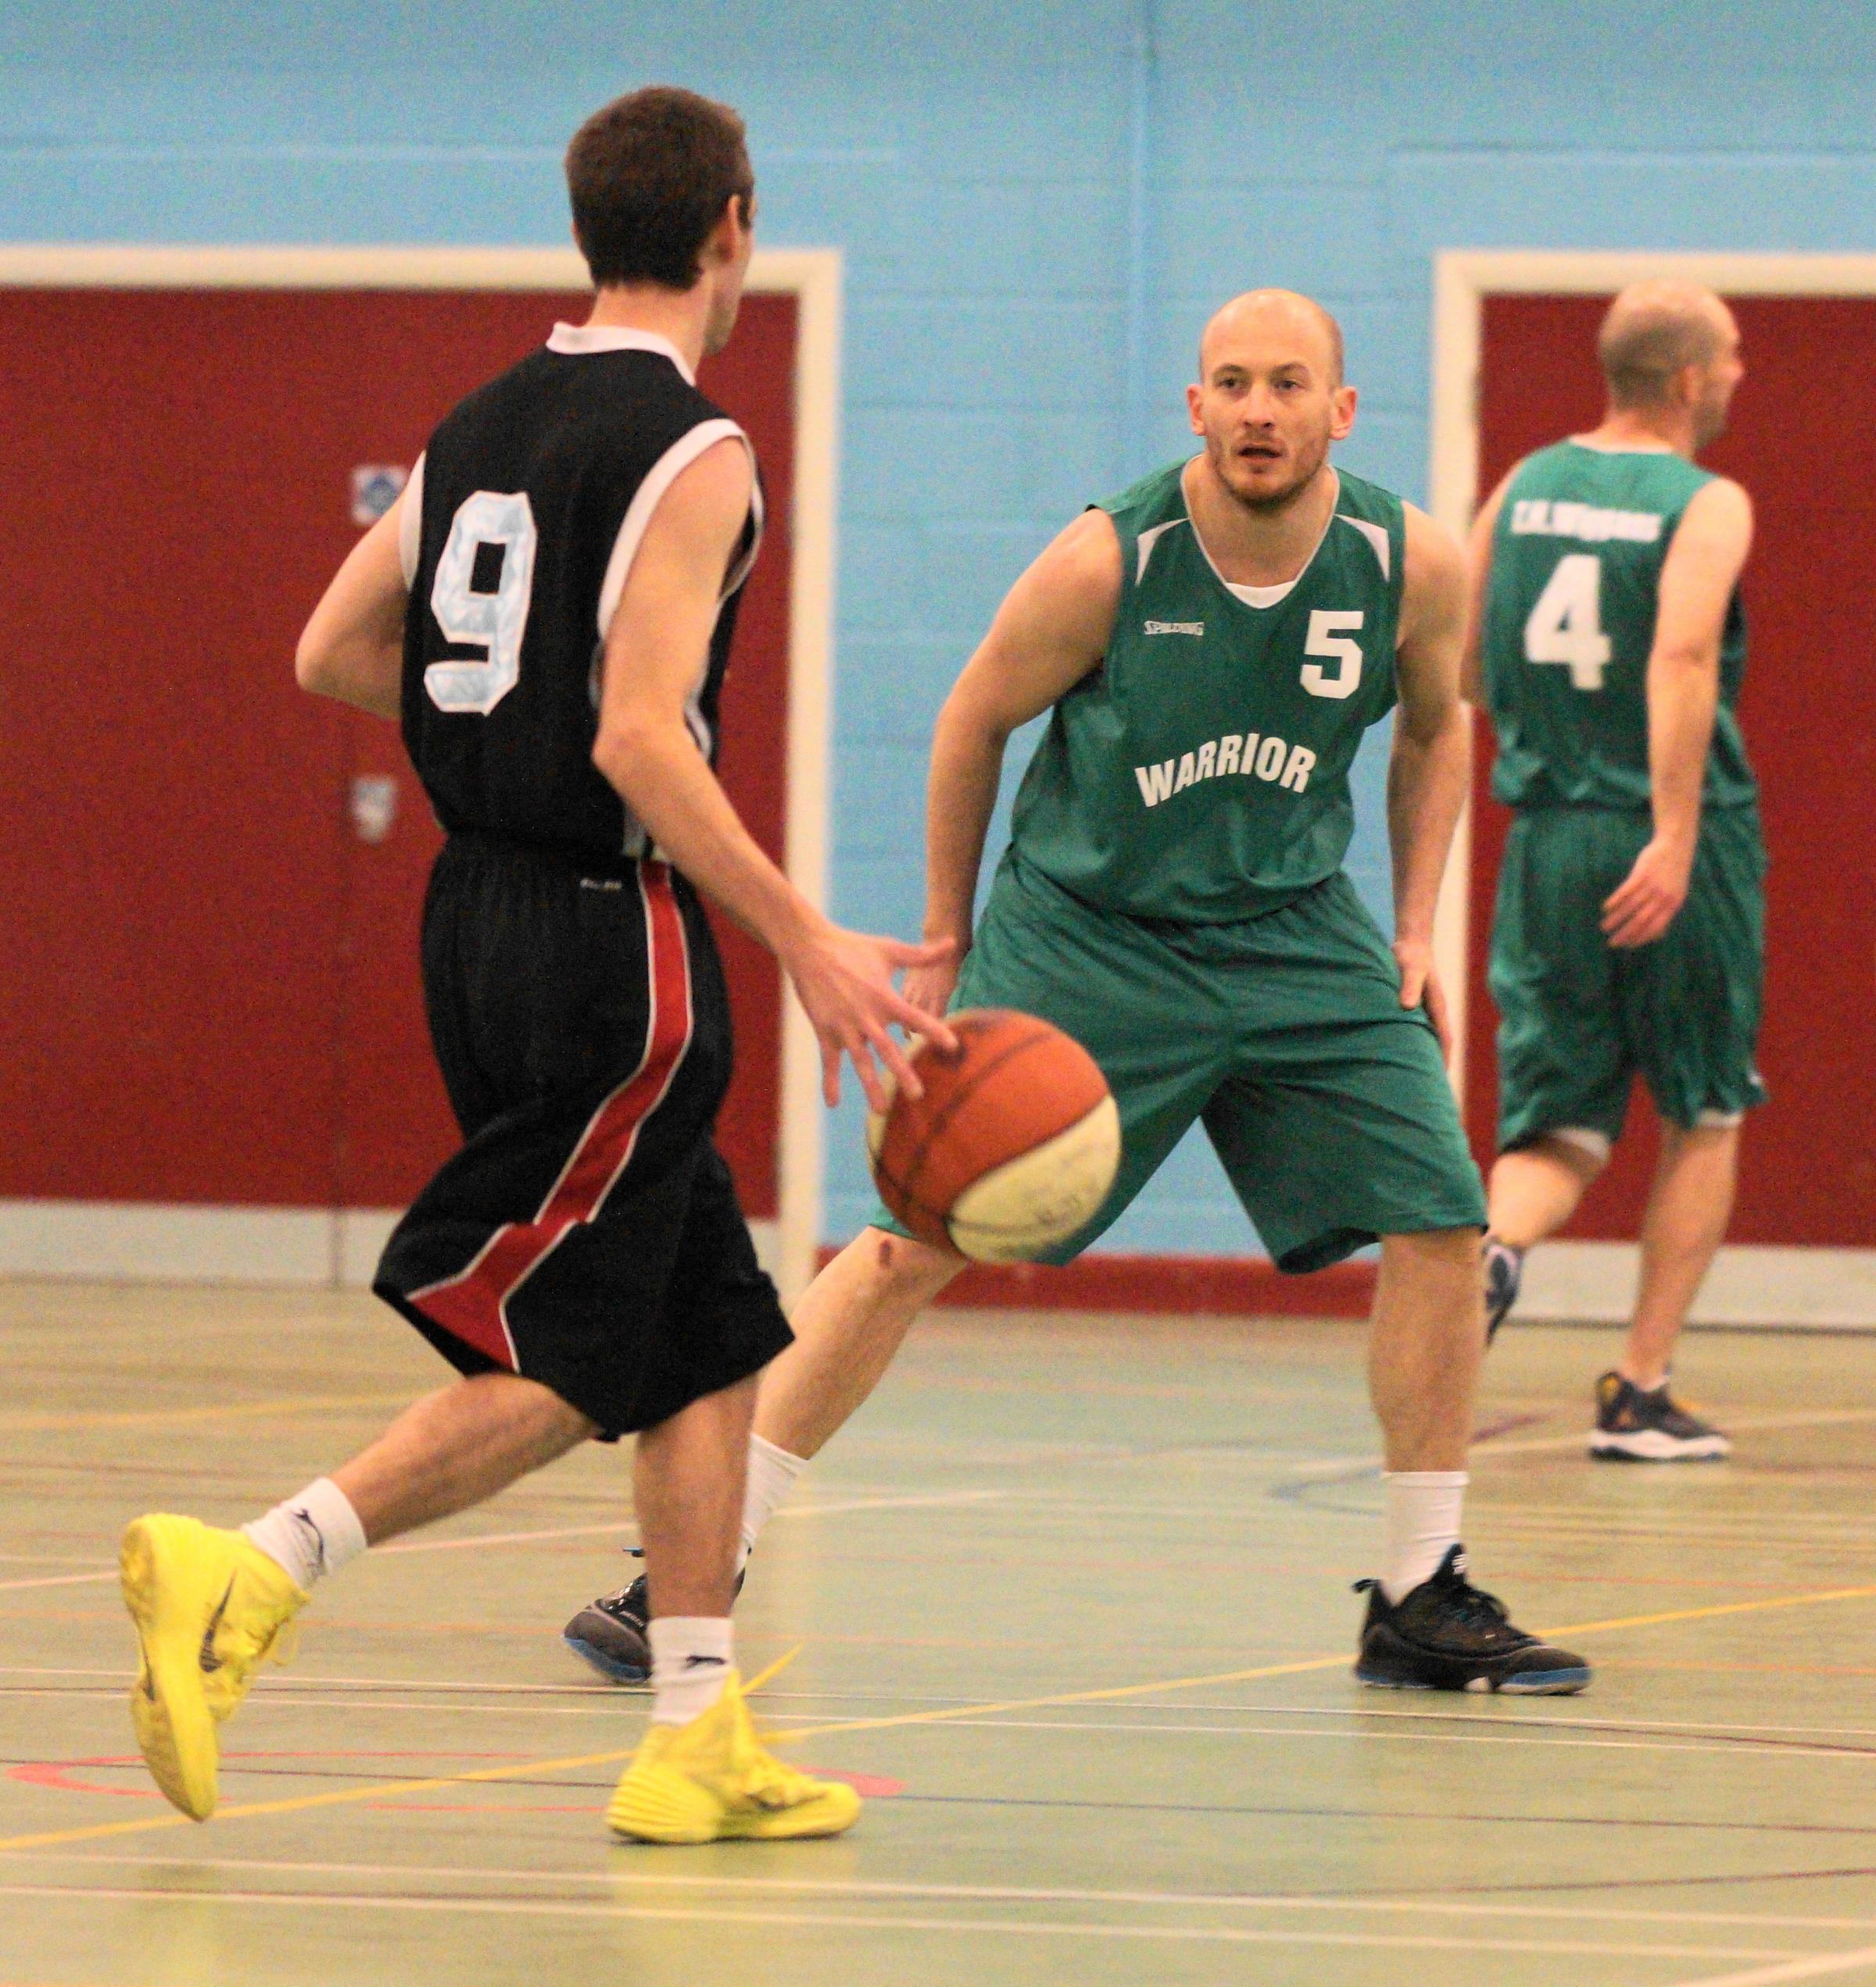 Basketball: Warriors bounce back from cup exit with win against Cumbrian rivals